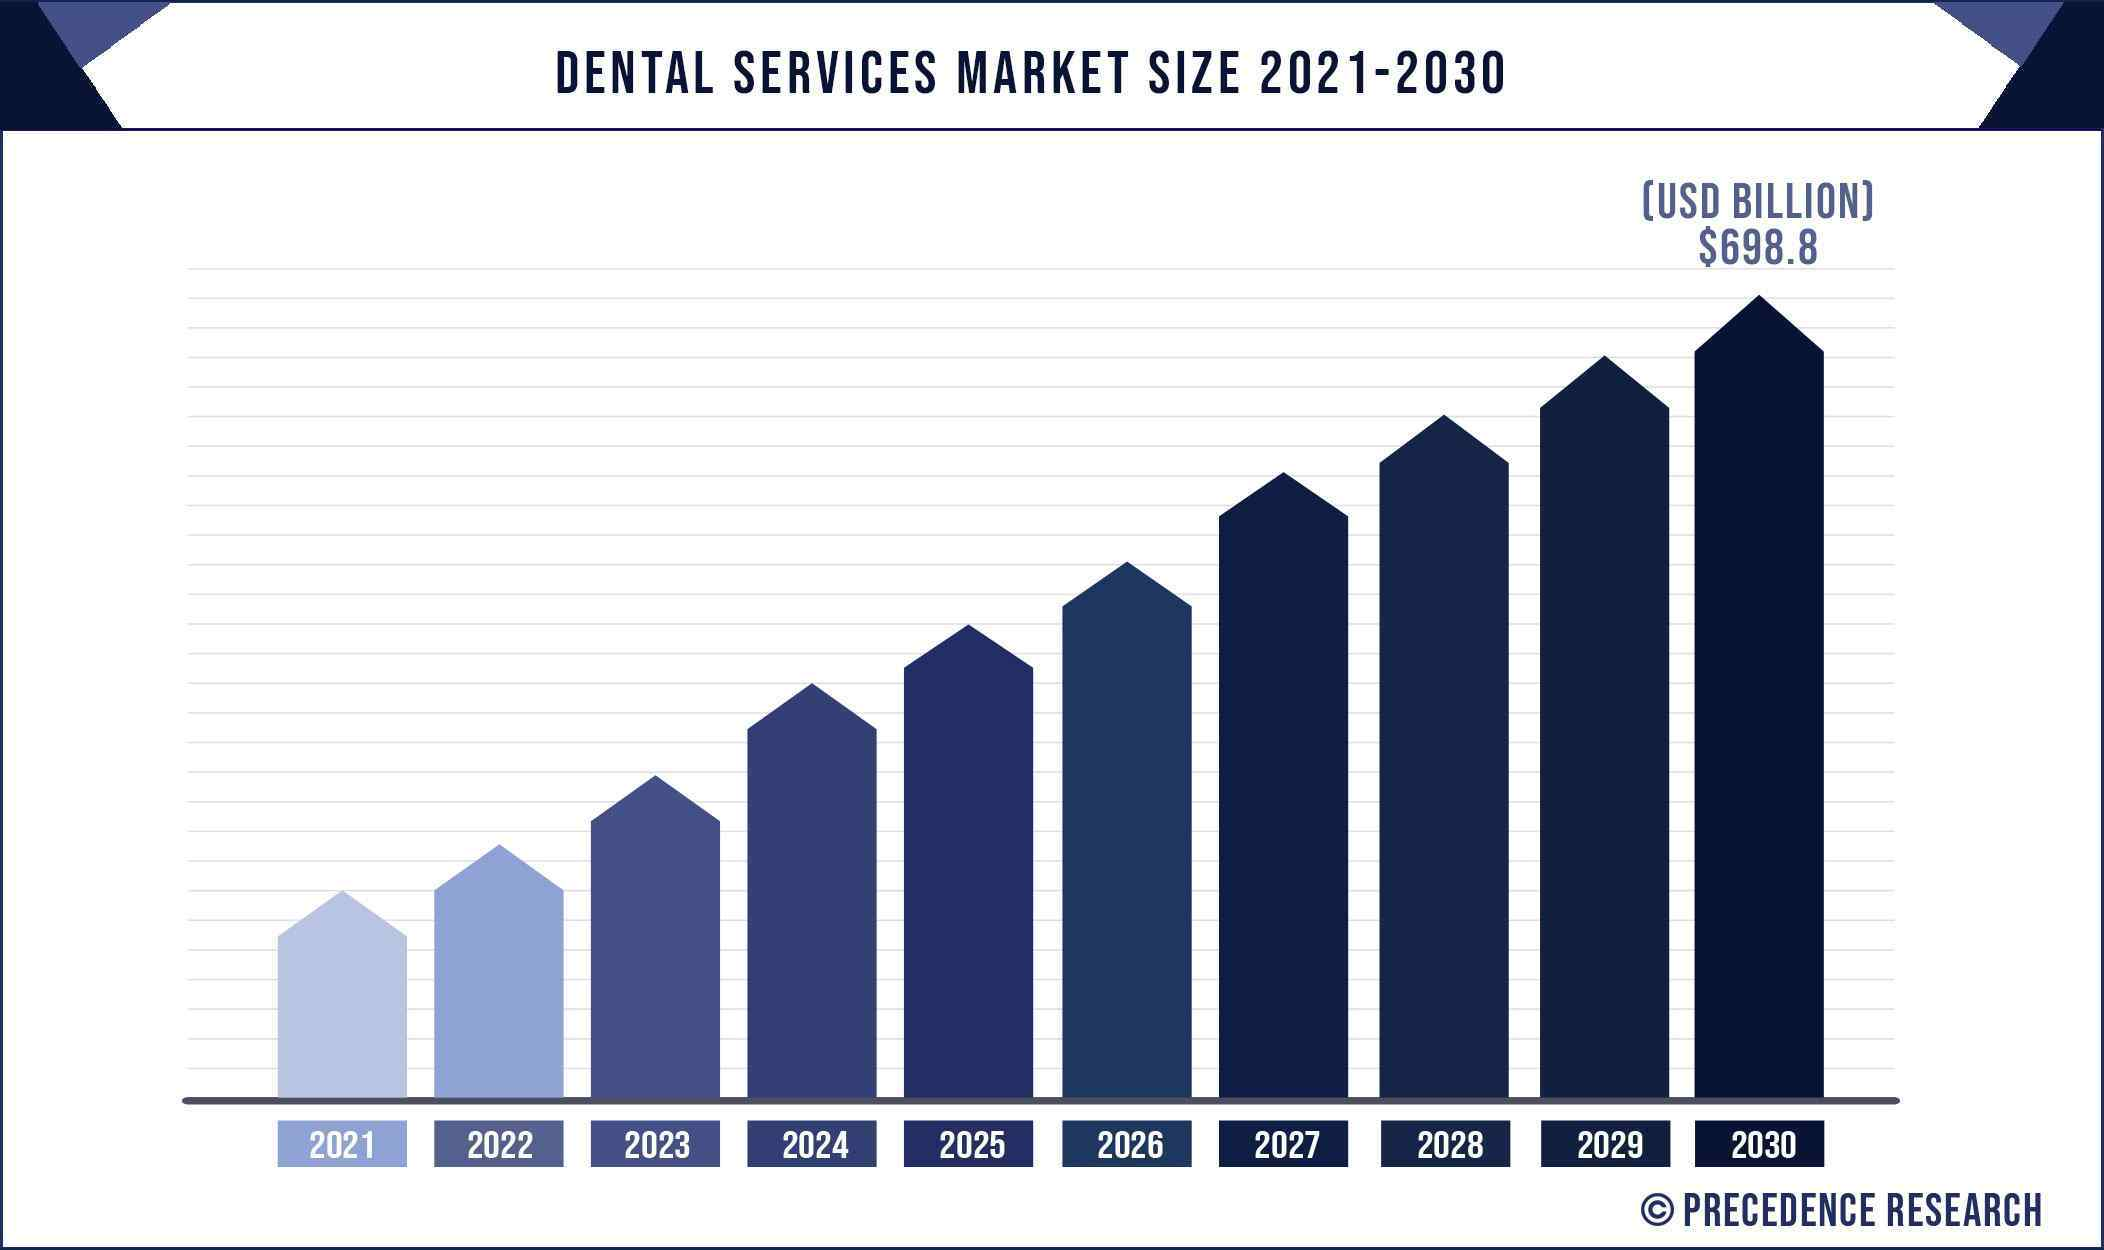 Dental Services Market Size 2021 to 2030